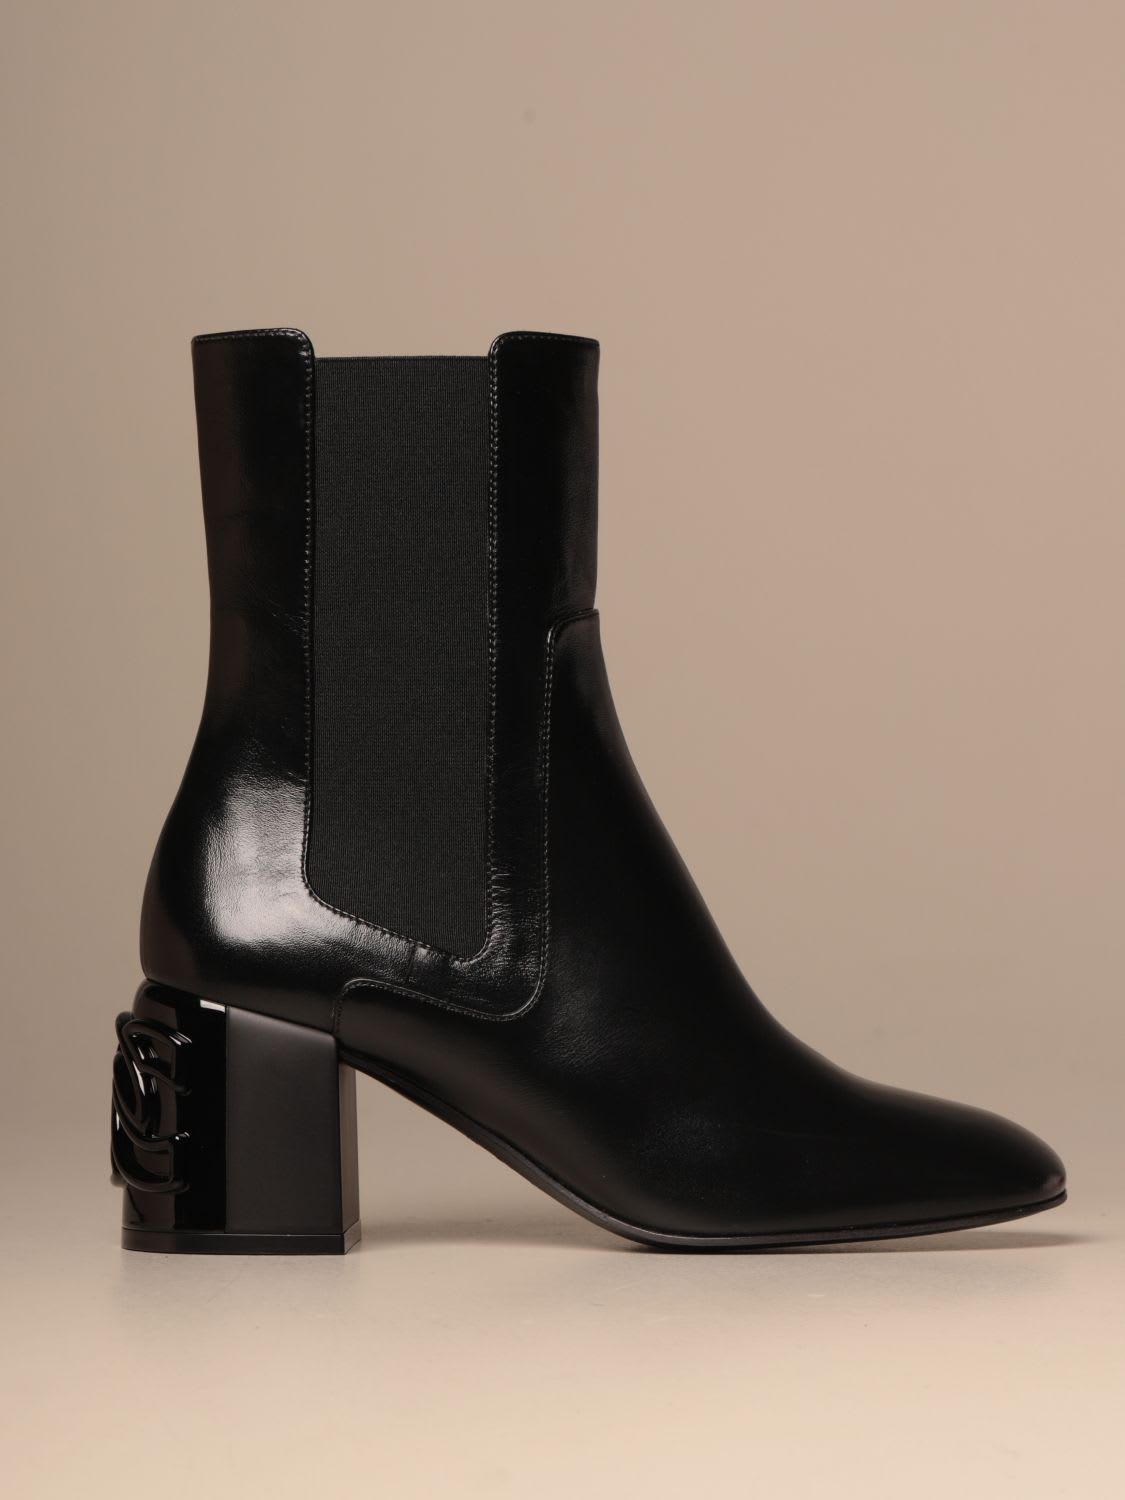 Casadei Heeled Booties Casadei C-chain Leather Ankle Boot